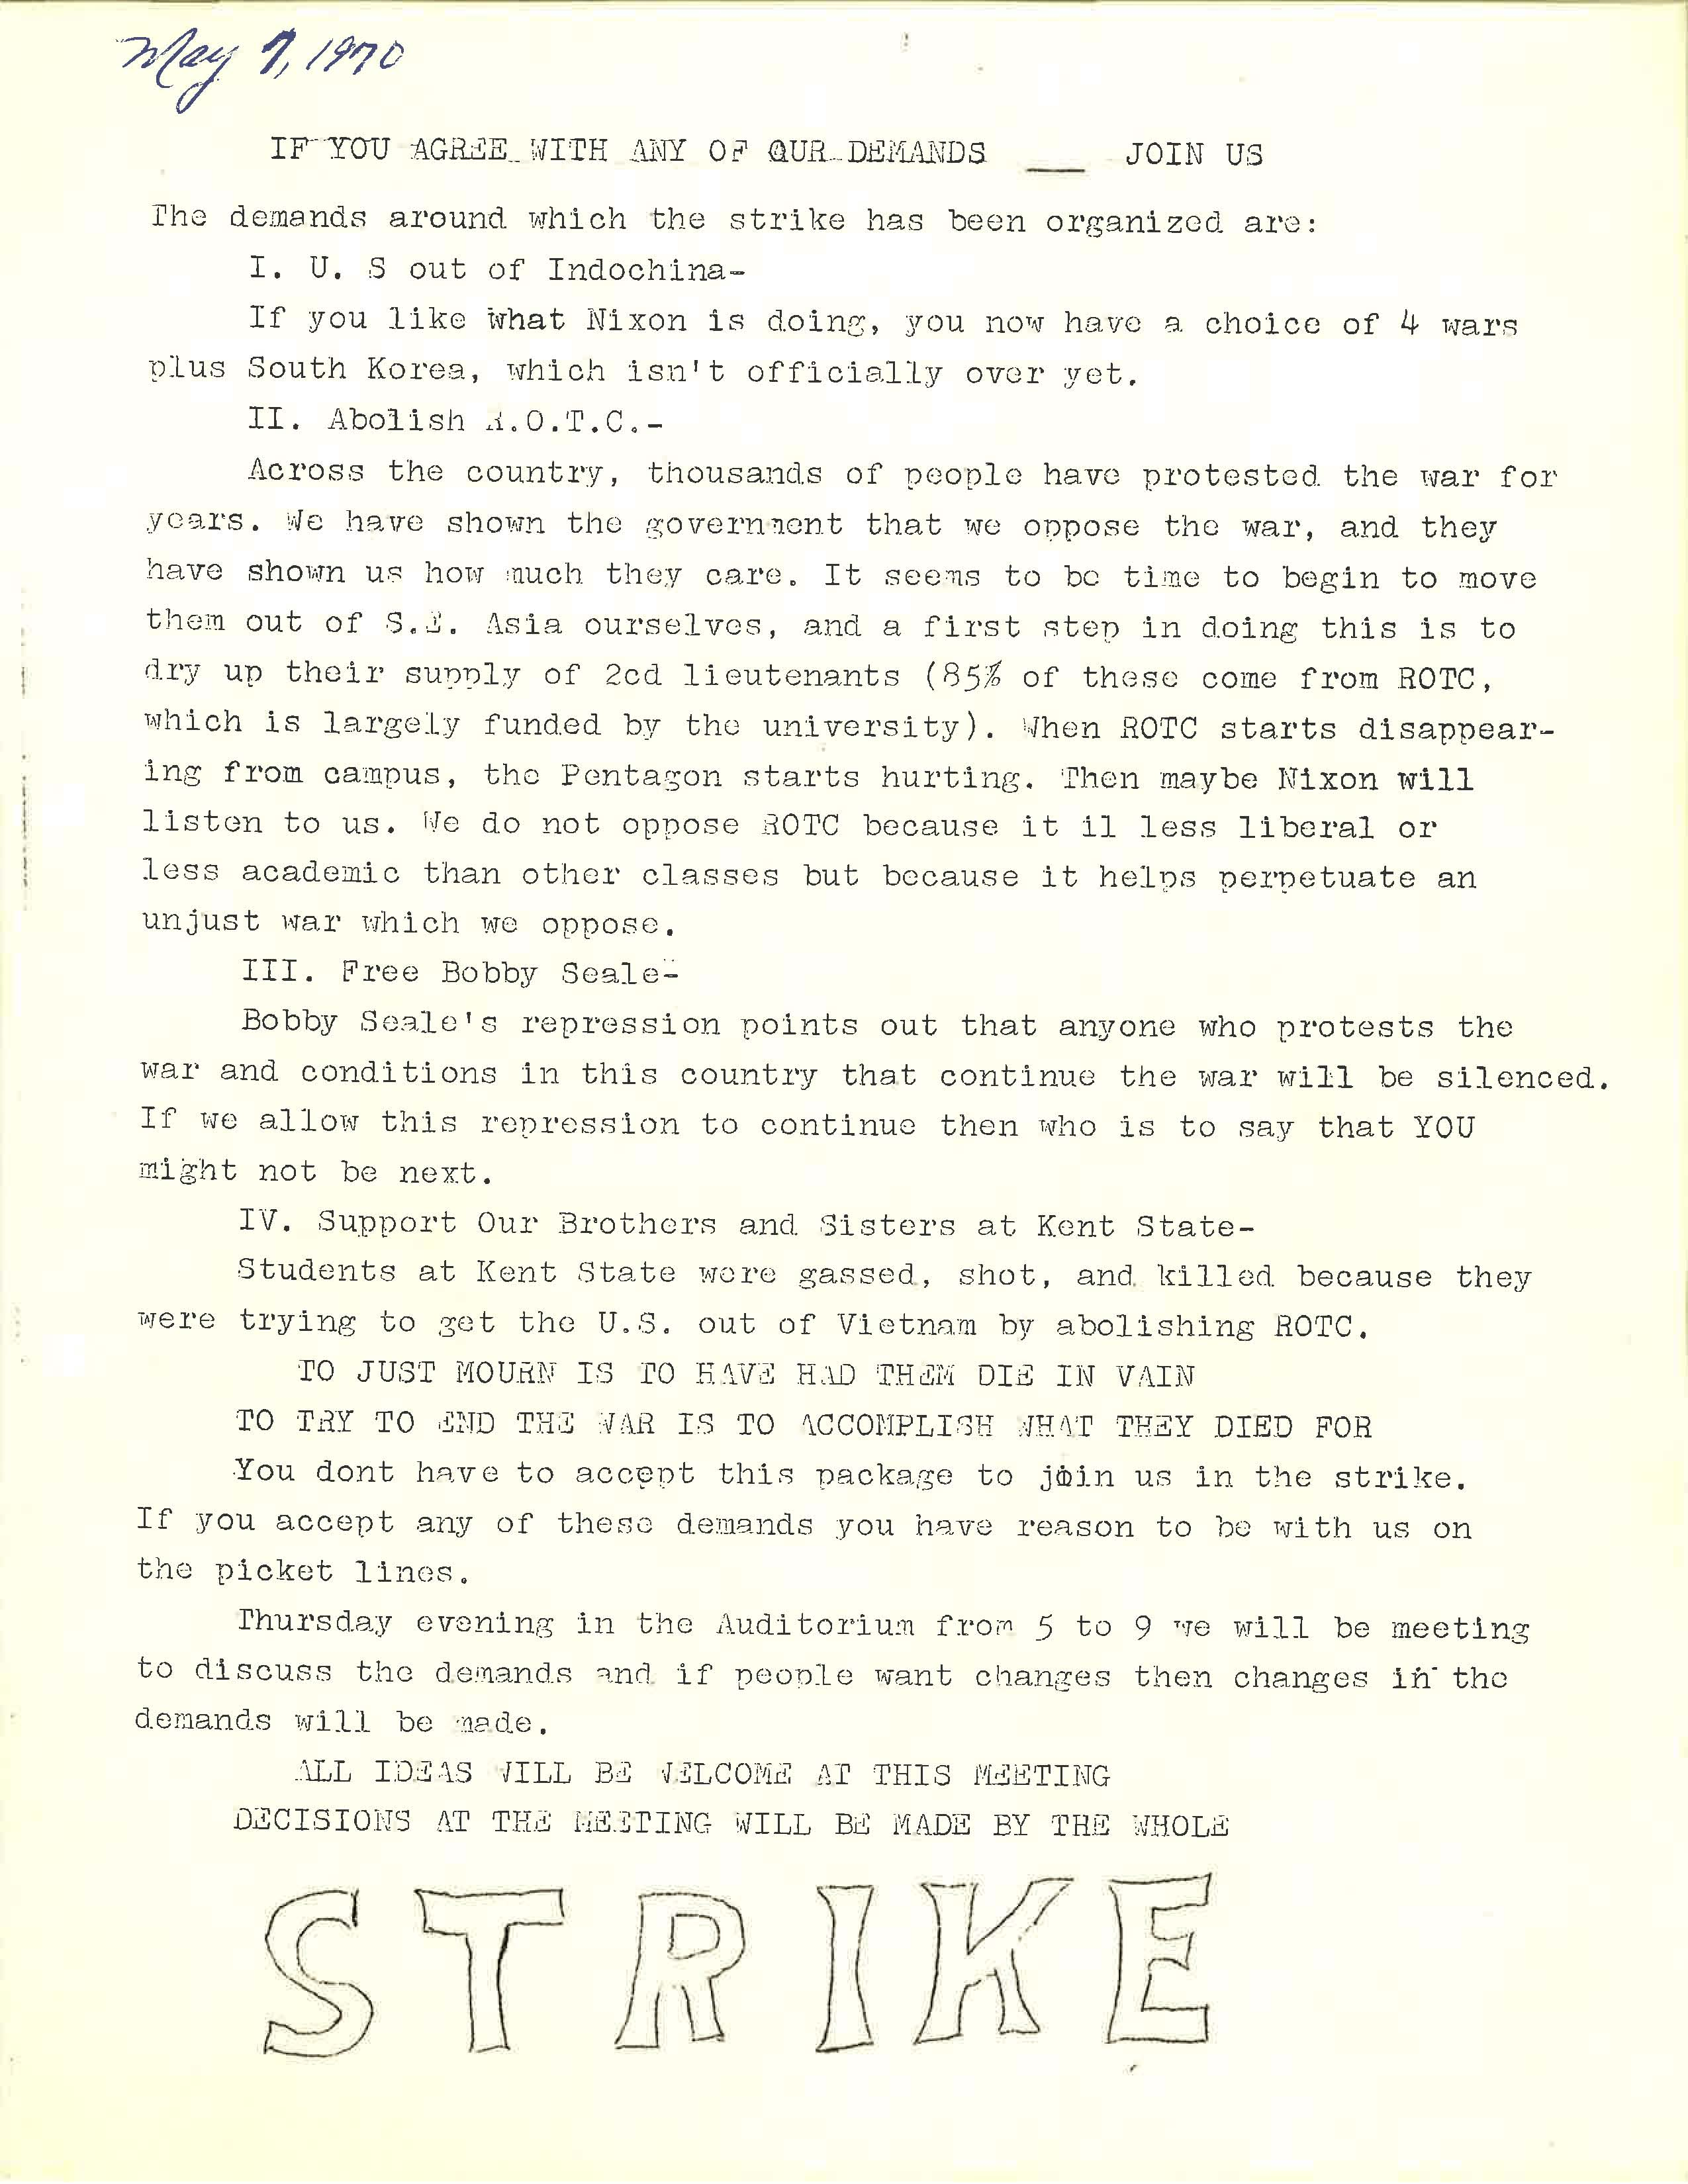 1970 Student Strike Demands Leaflet